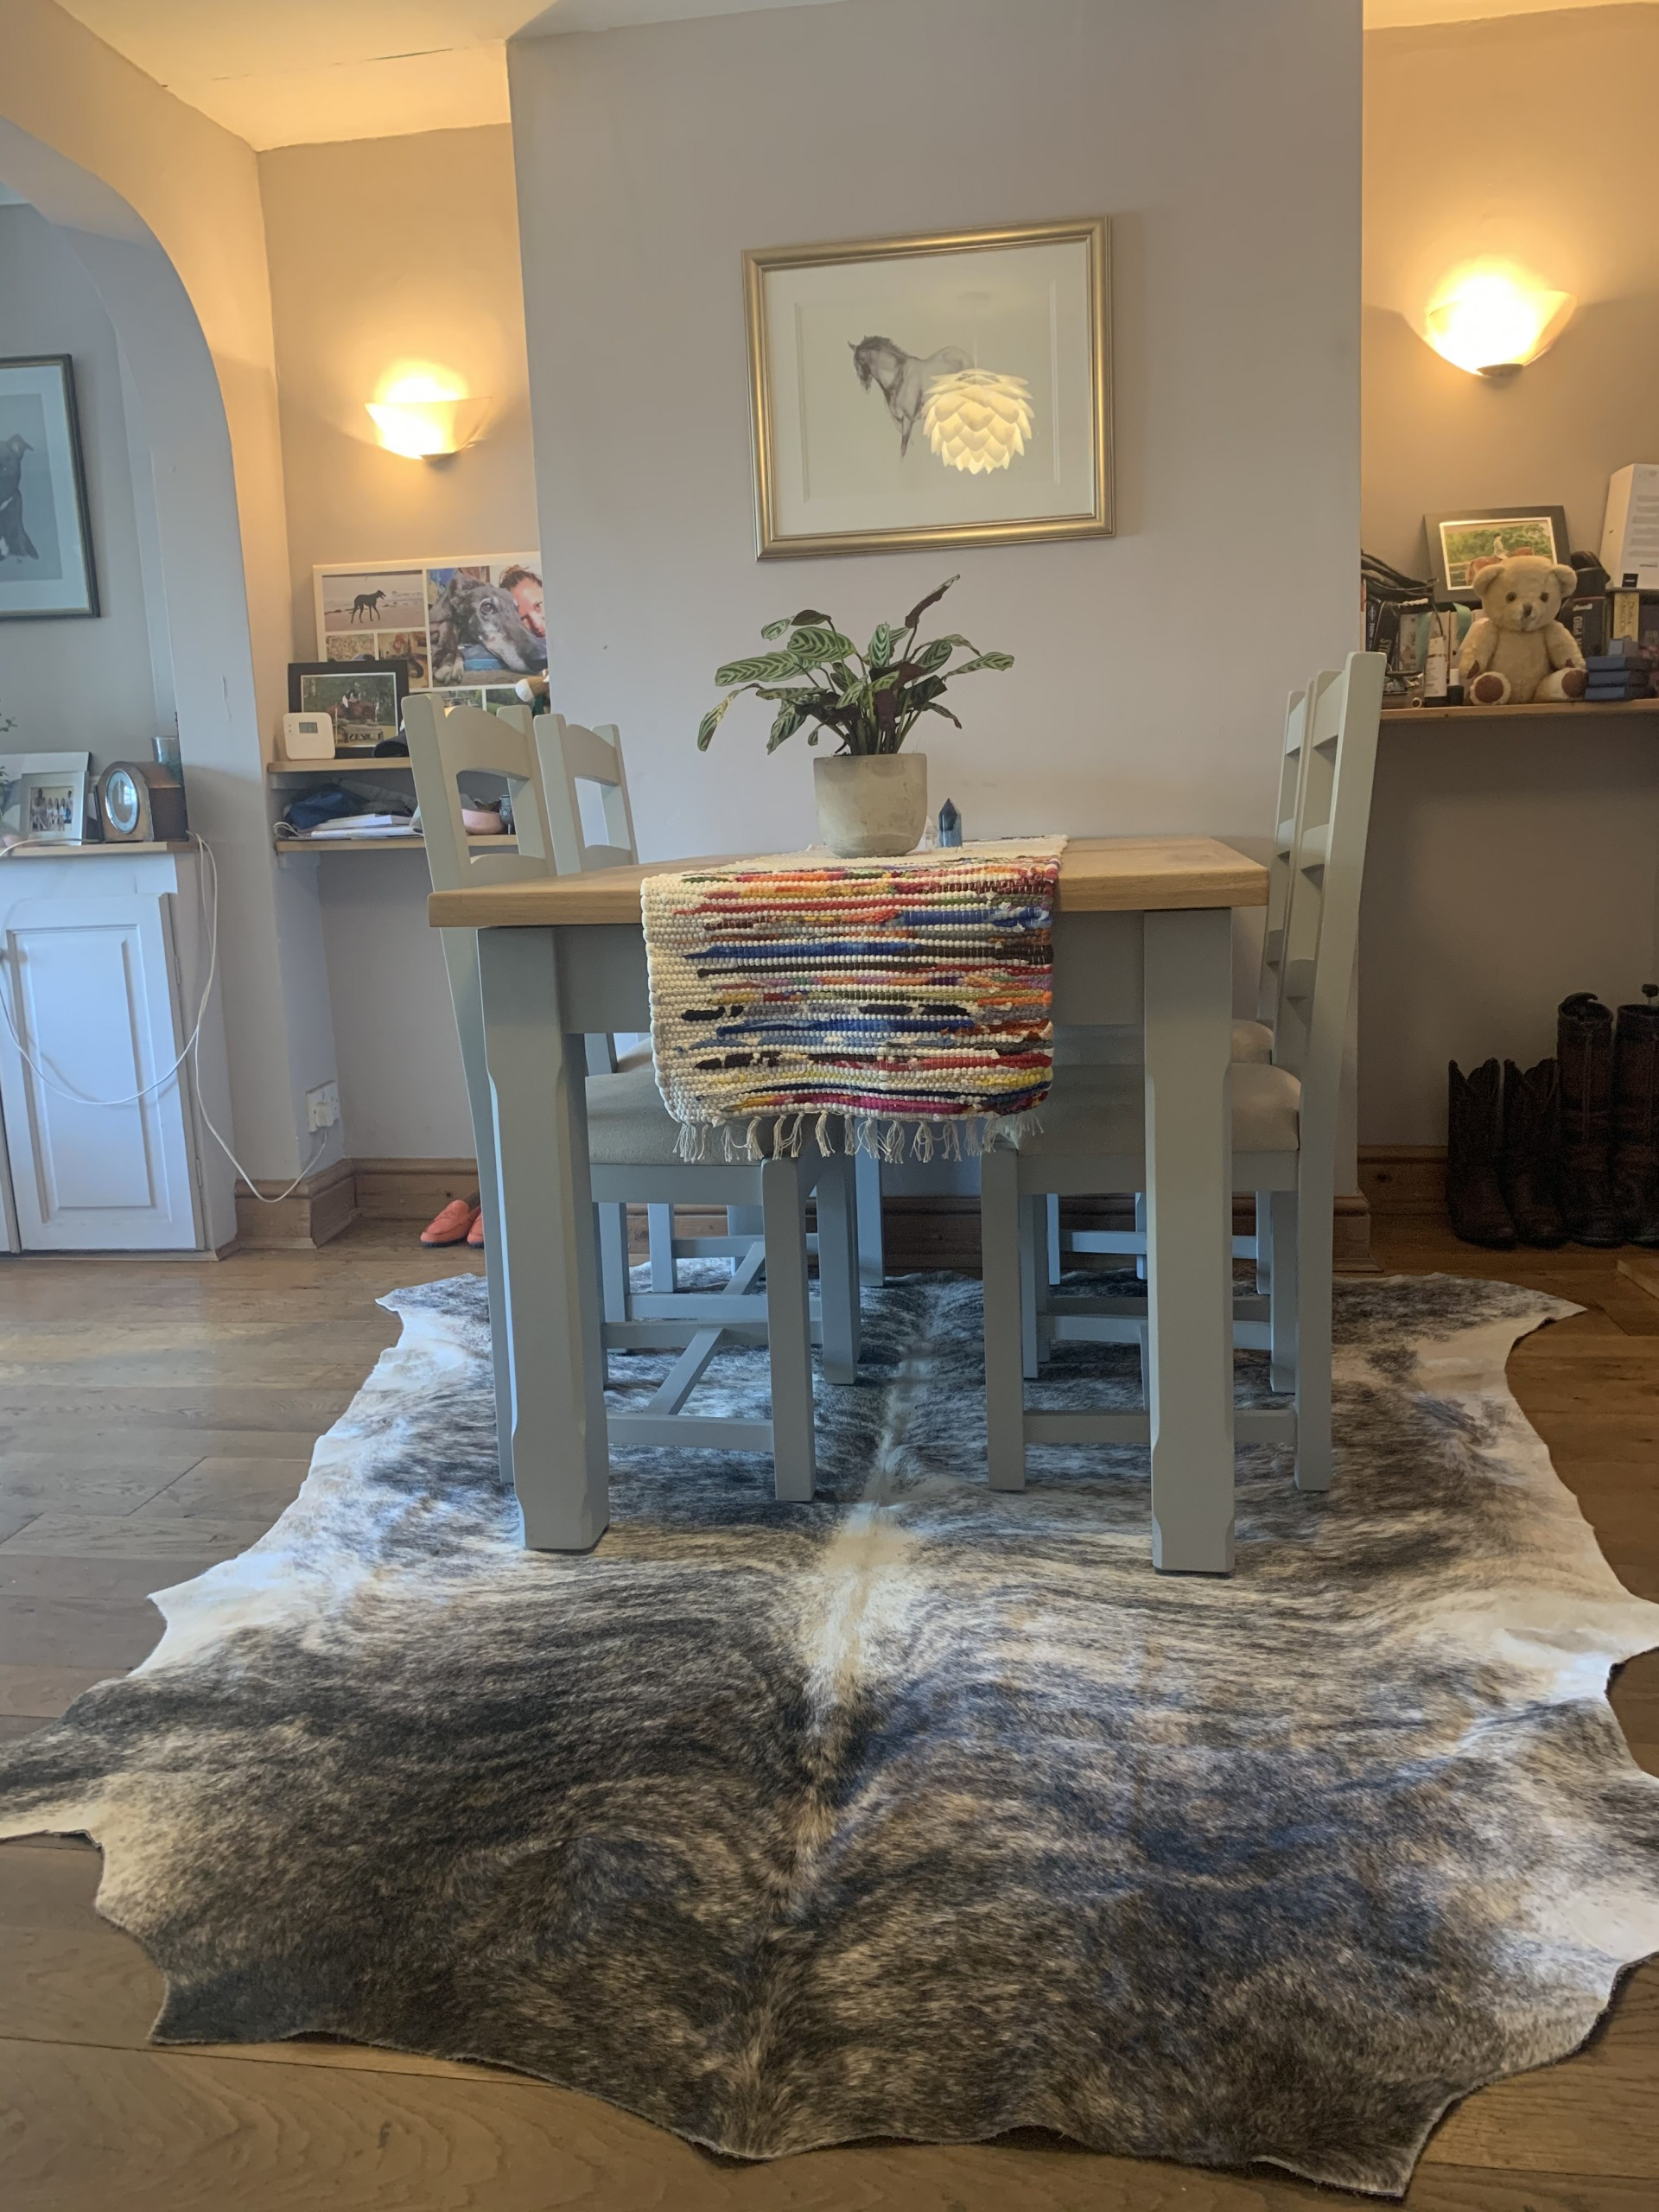 Nguni cowhide rugs, white & black spot, cowhides, skins, animal print, cowhide, luxury interiors, home interiors, interior styling, soft furnishings, sustainable, ethical, skins,